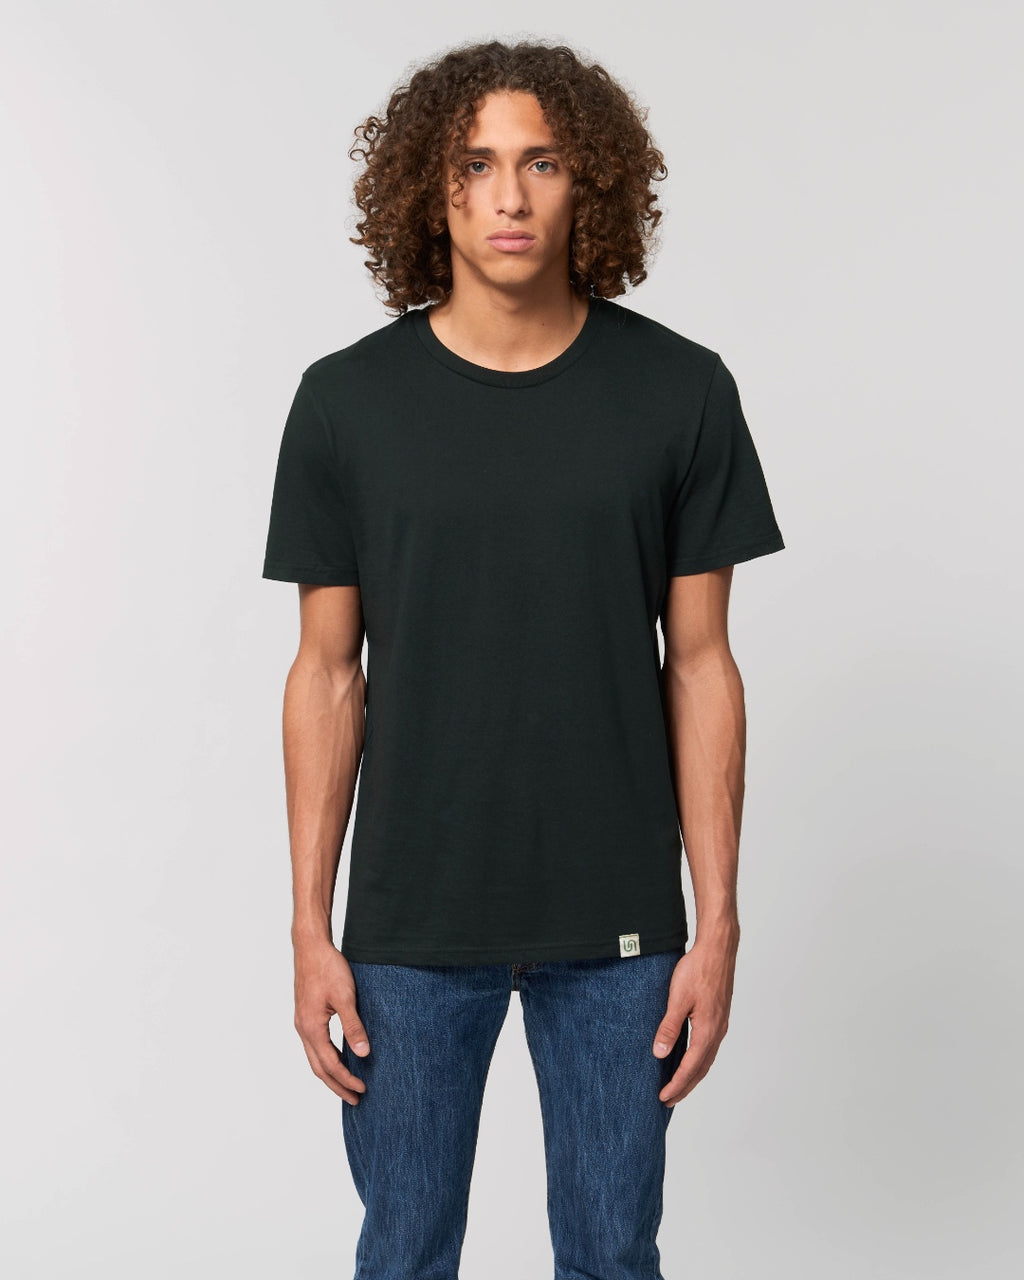 The Green Tee - sustainable, vegan and plastic free t-shirt - colour: black